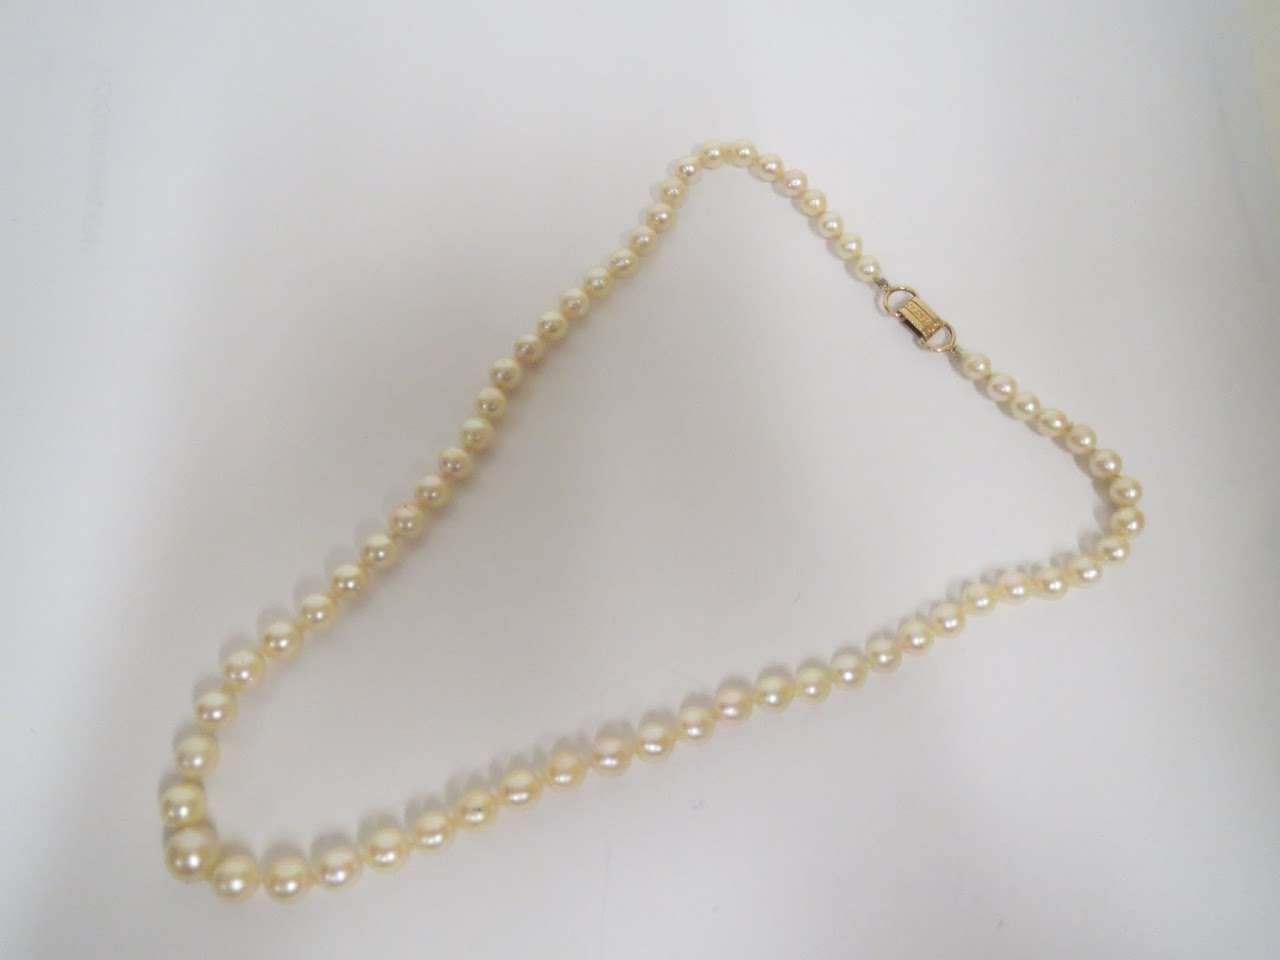 14kt and Pearl Necklace